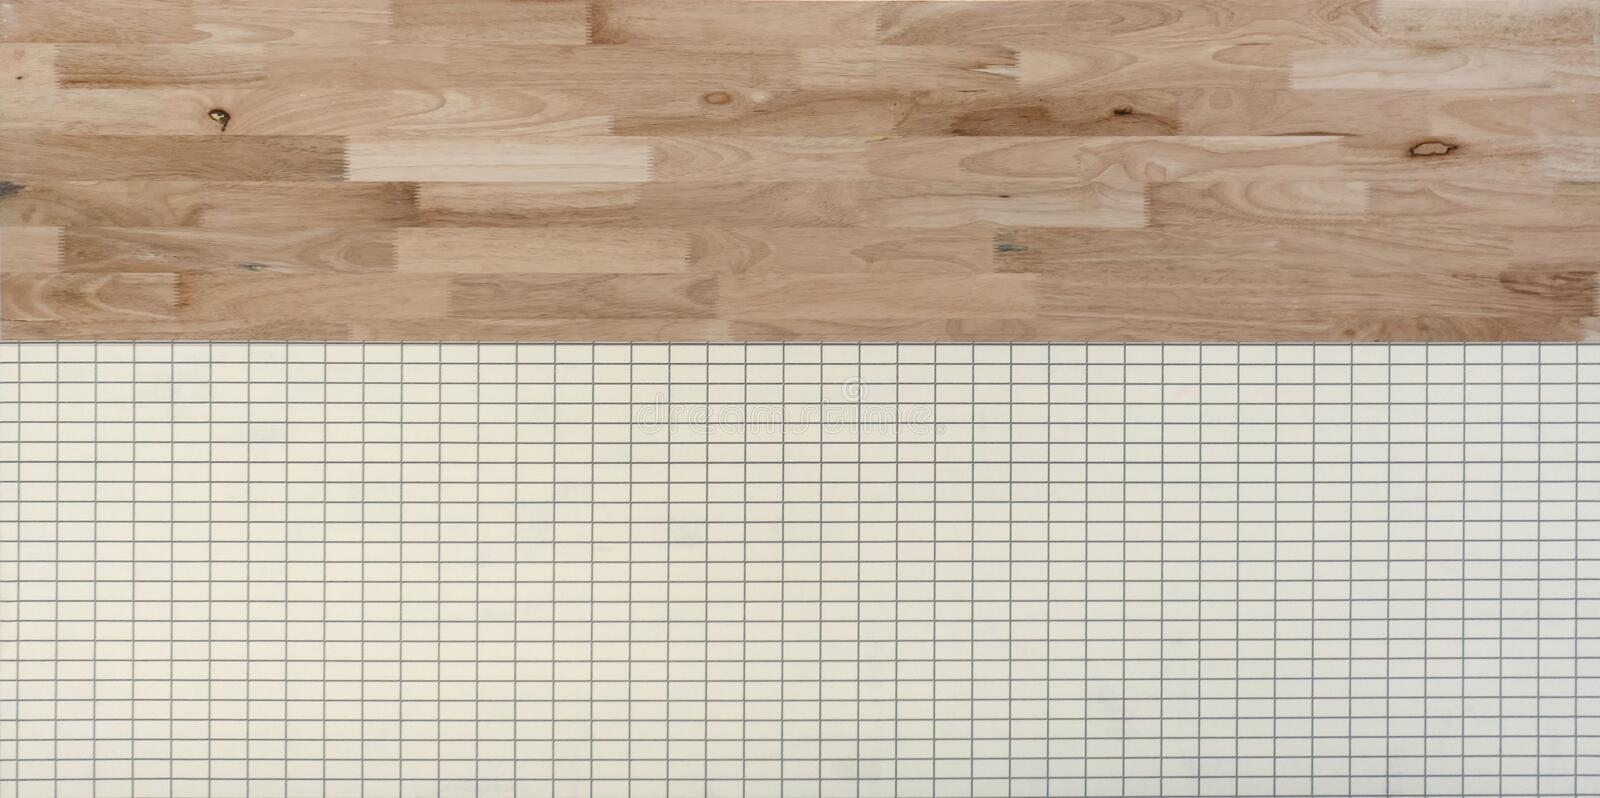 Natural wood wall and white tiles. Flooring pattern surface texture. Close-up of interior material for design decoration royalty free stock photo